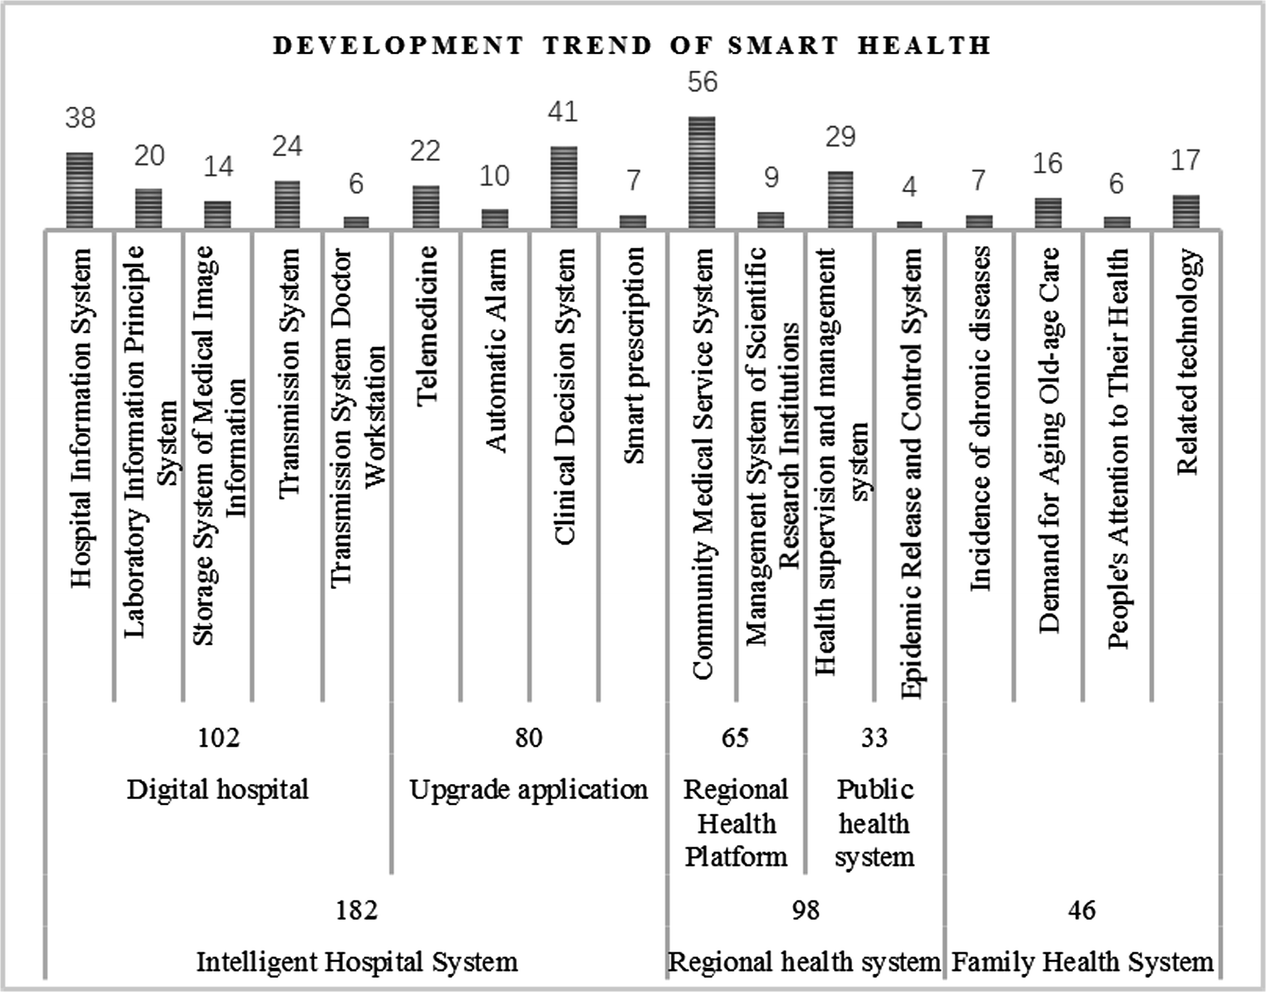 Analysis of Smart Health Research Context and Development